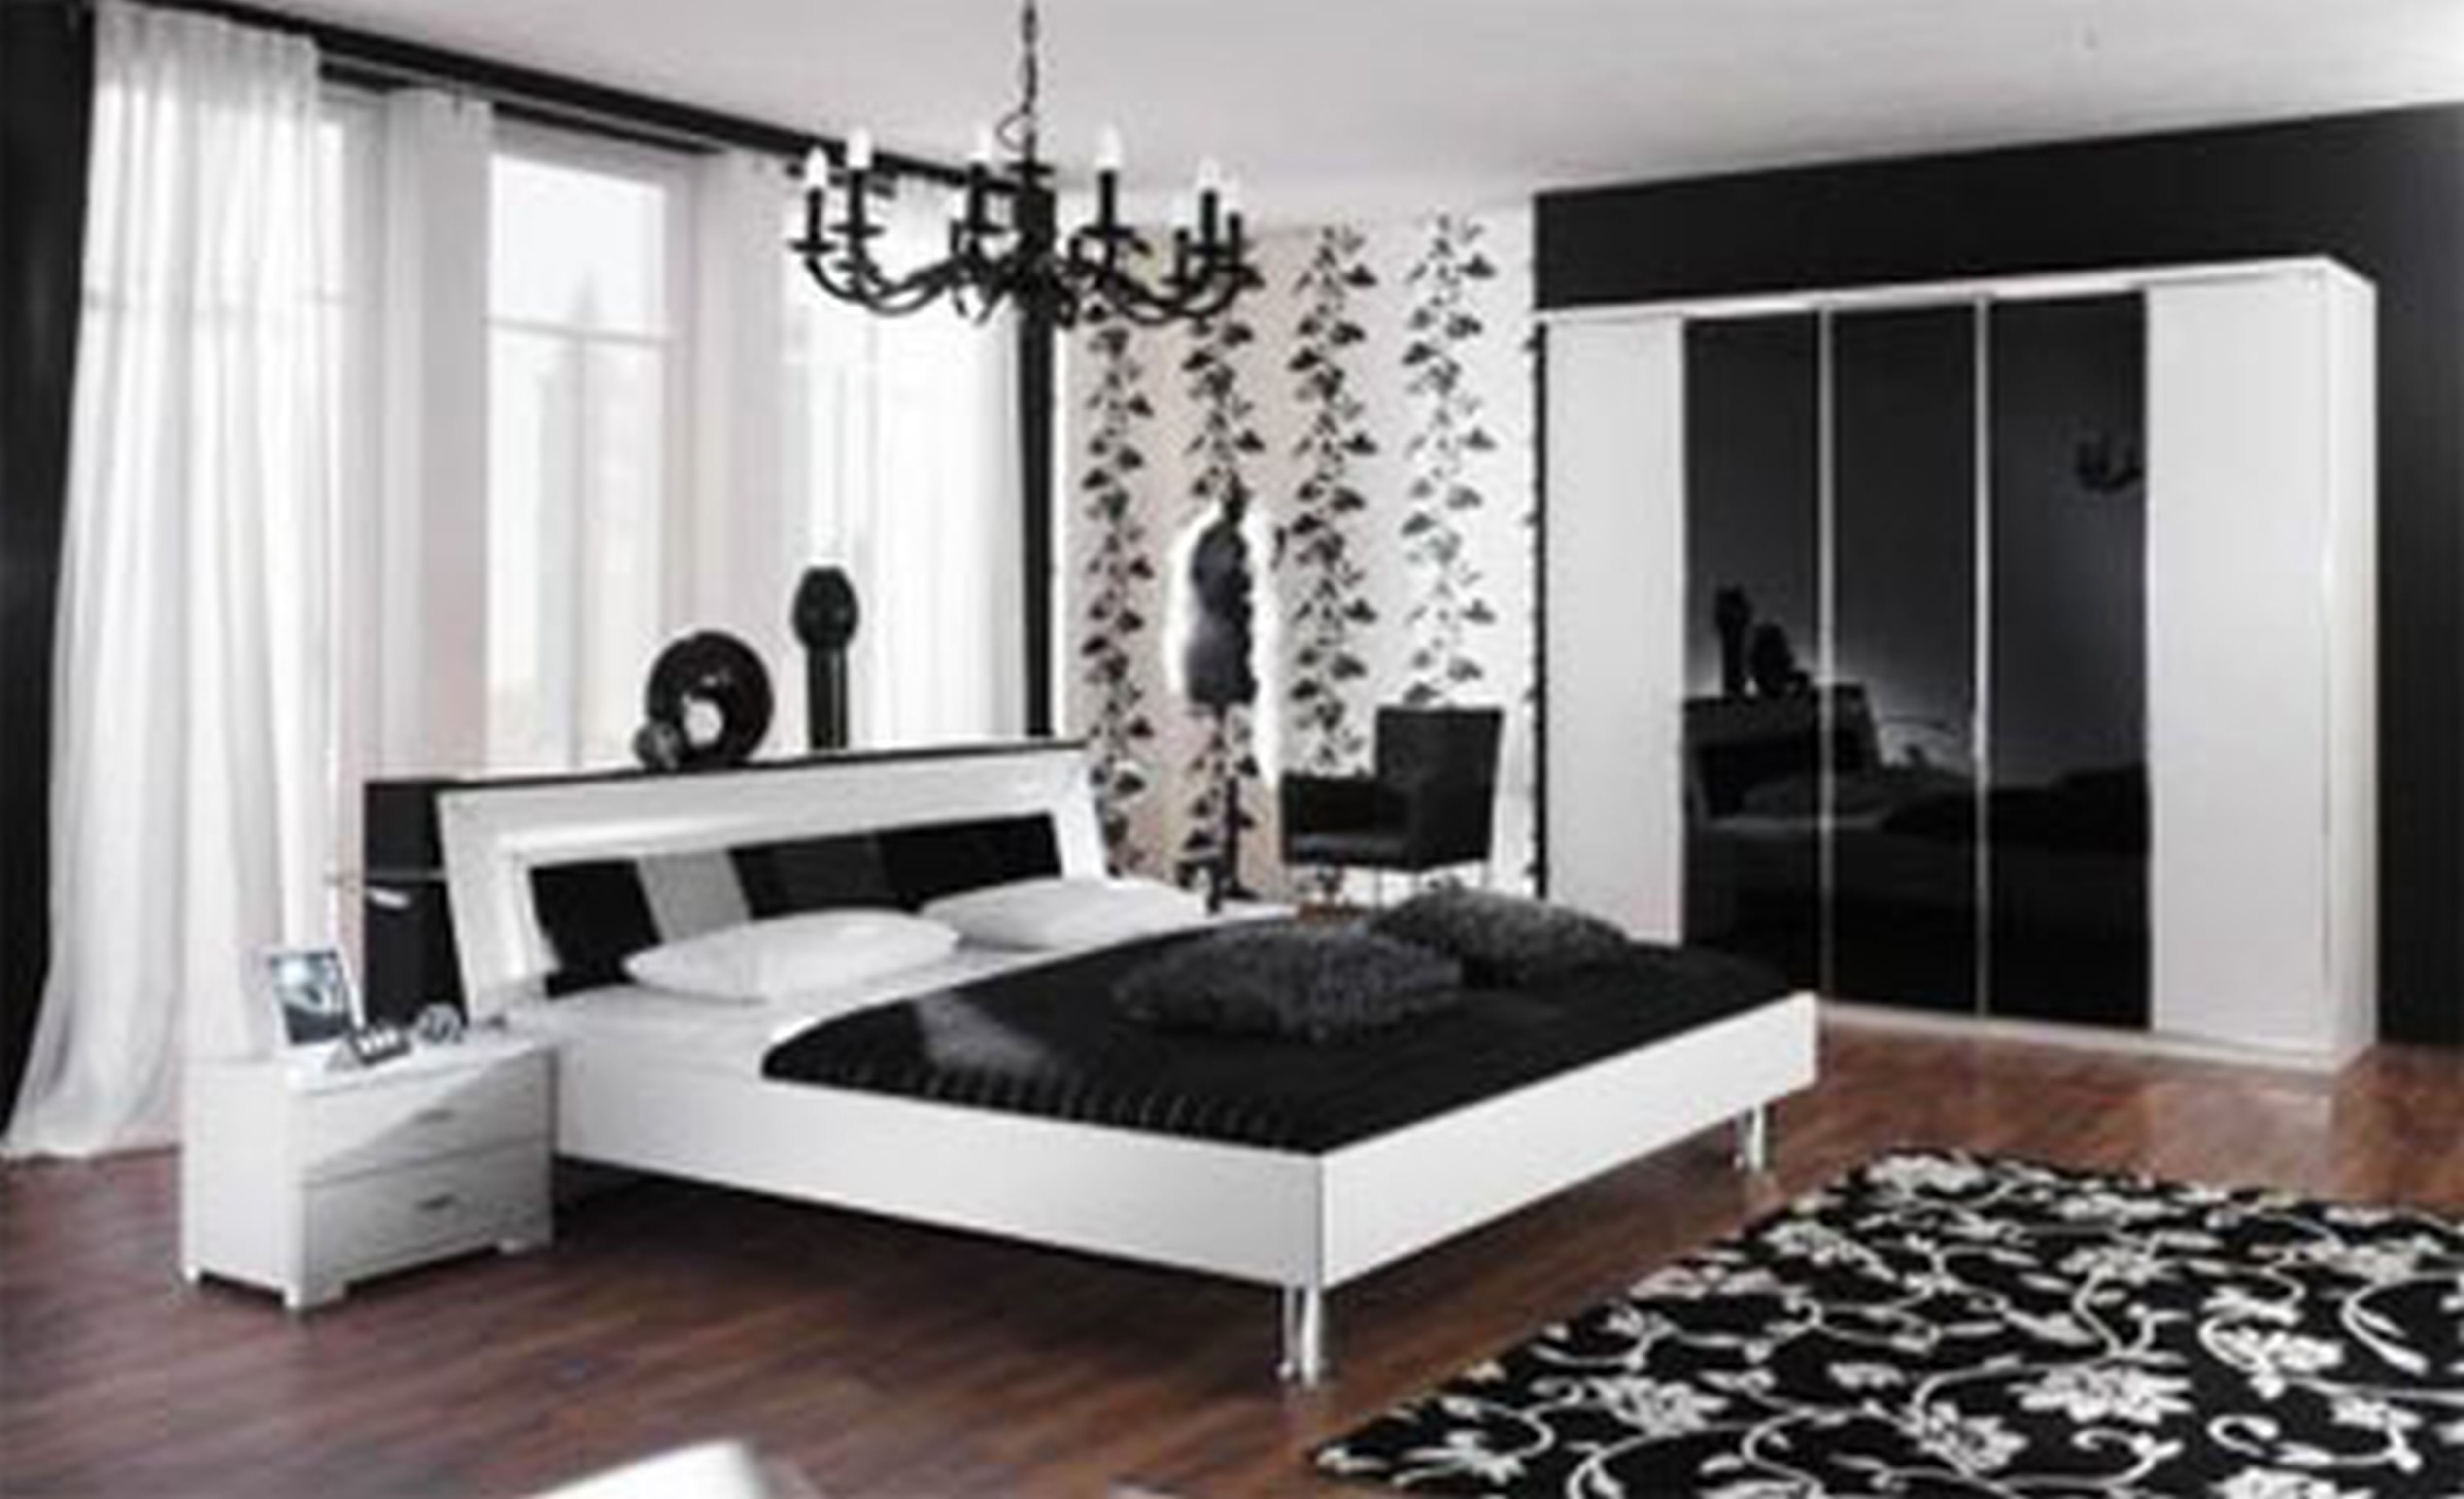 10 Awesome Black And White Room Ideas black and white bedroom ideas amusing decor black and white bedroom